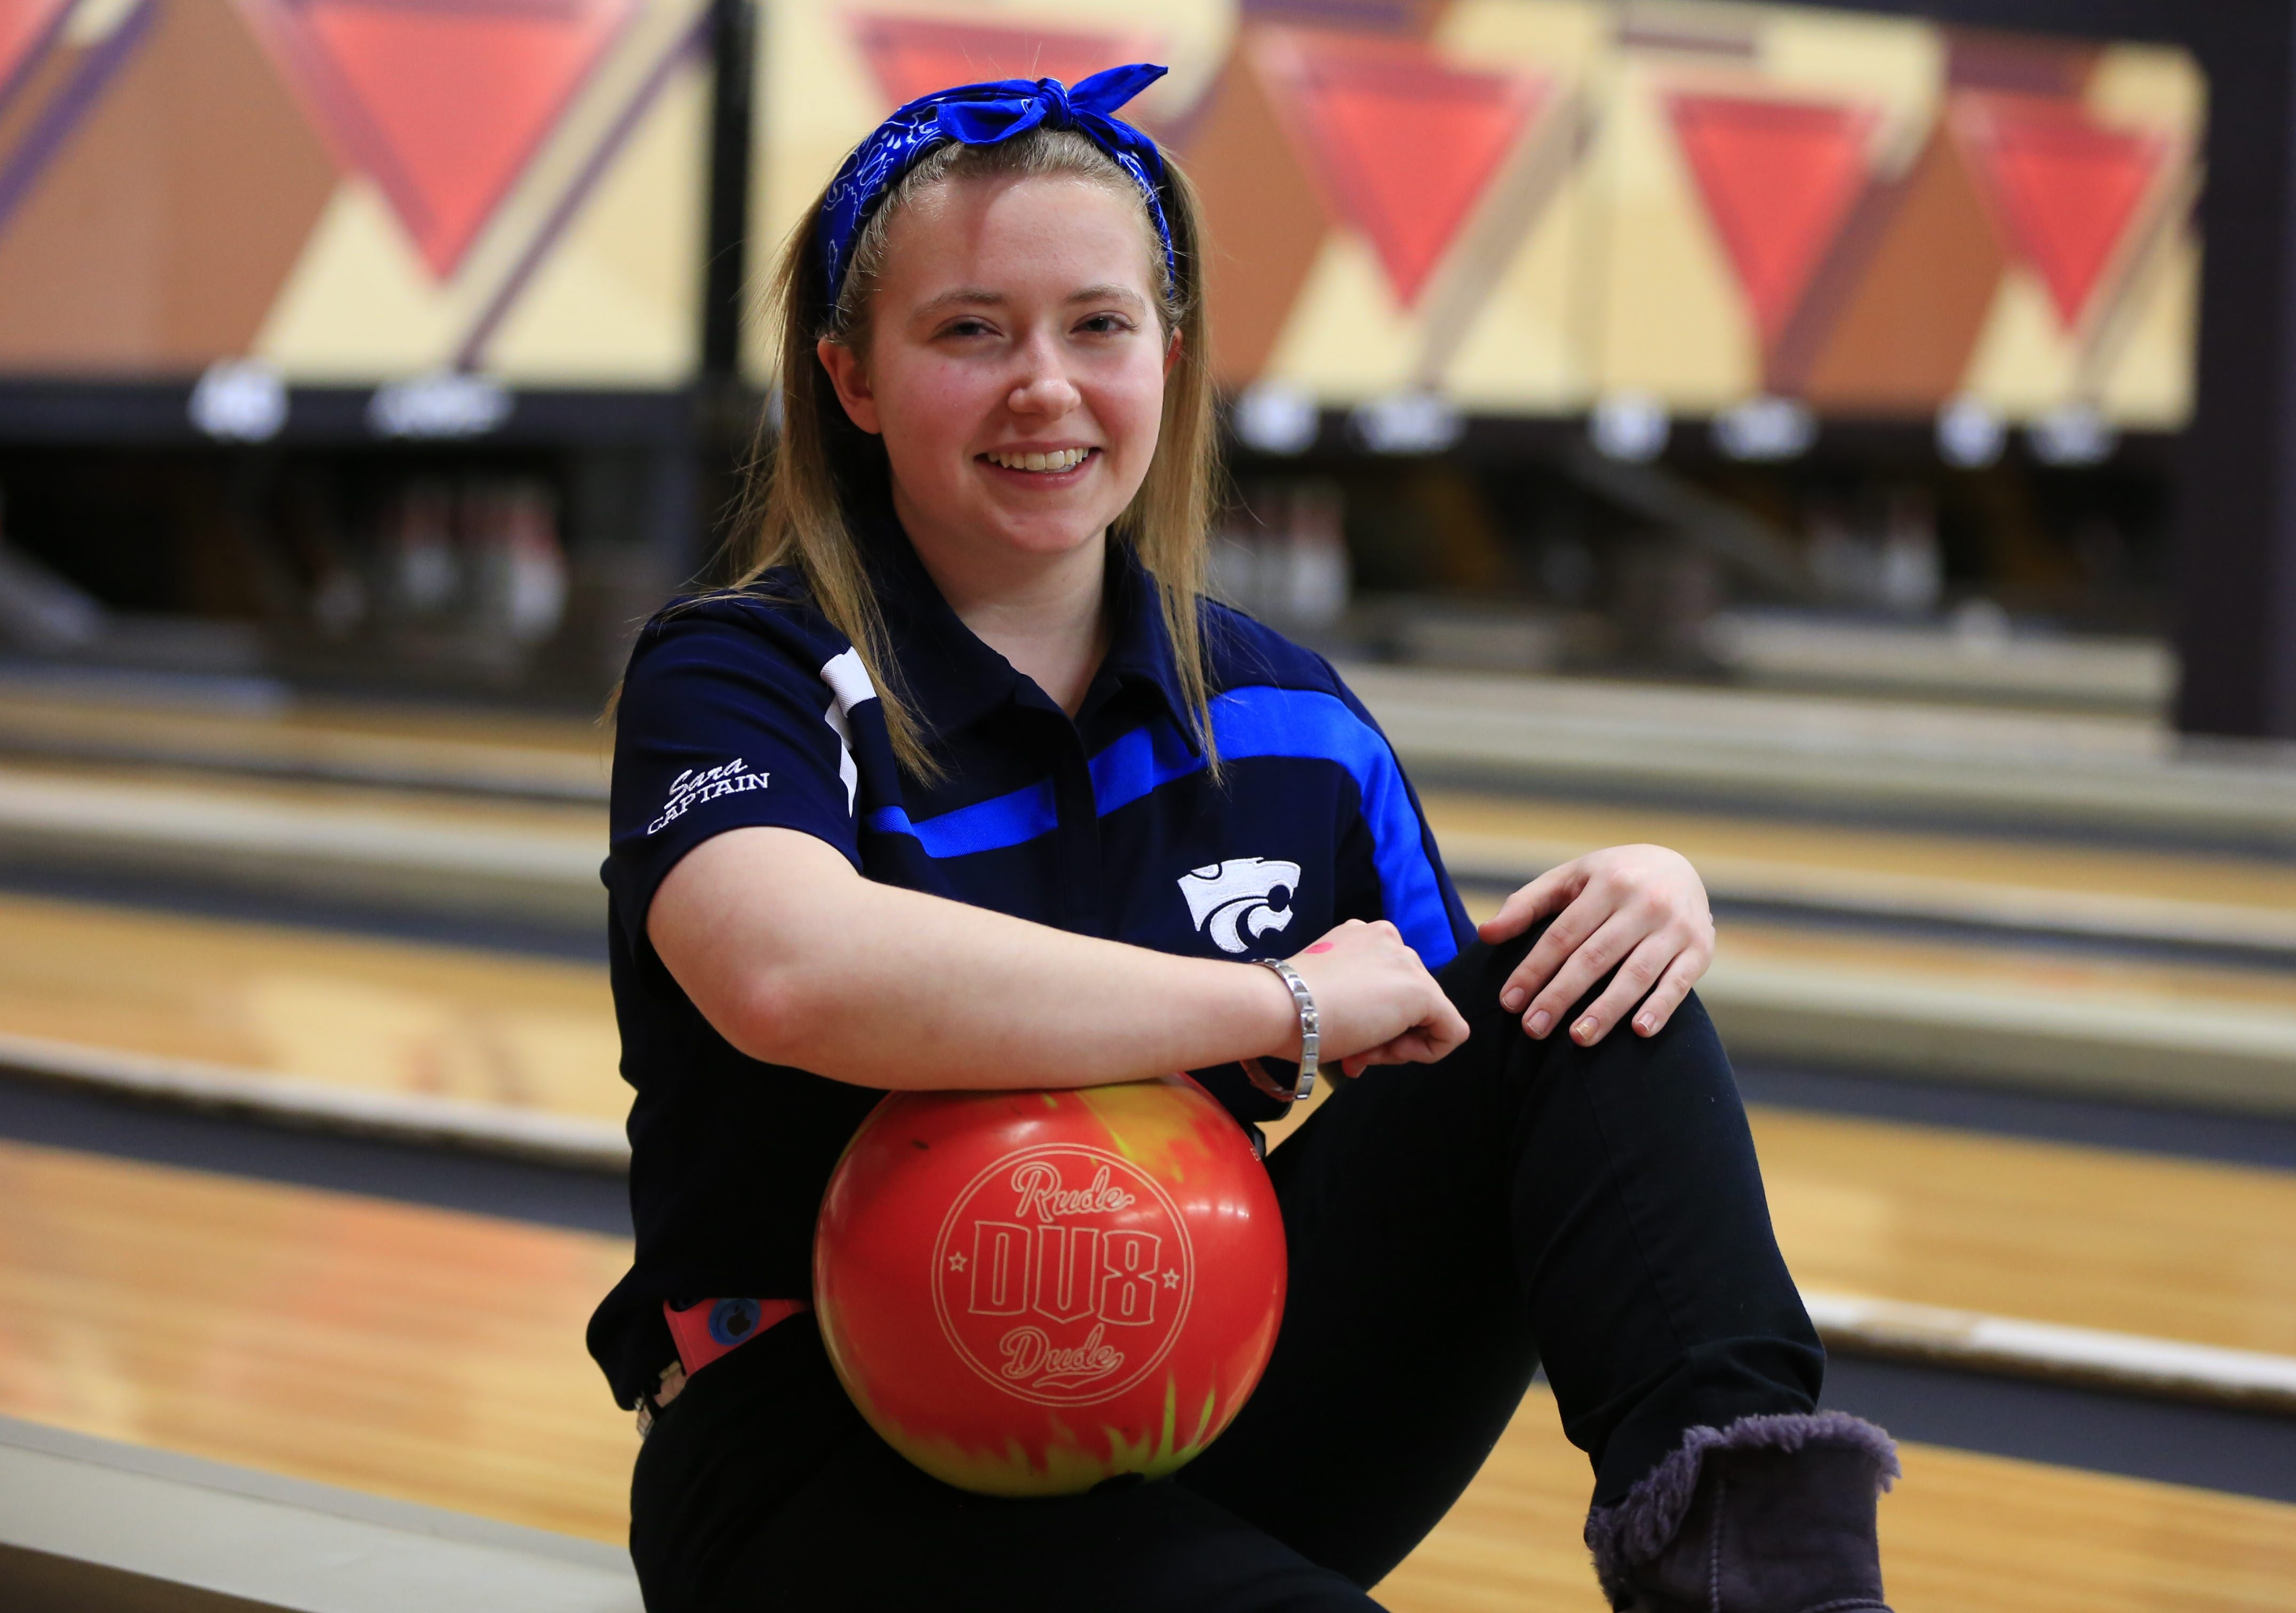 Depew's Sara Snyder won the 2015 Section VI girls bowling title with a pin total of 1197. She looks to repeat her success her senior season.